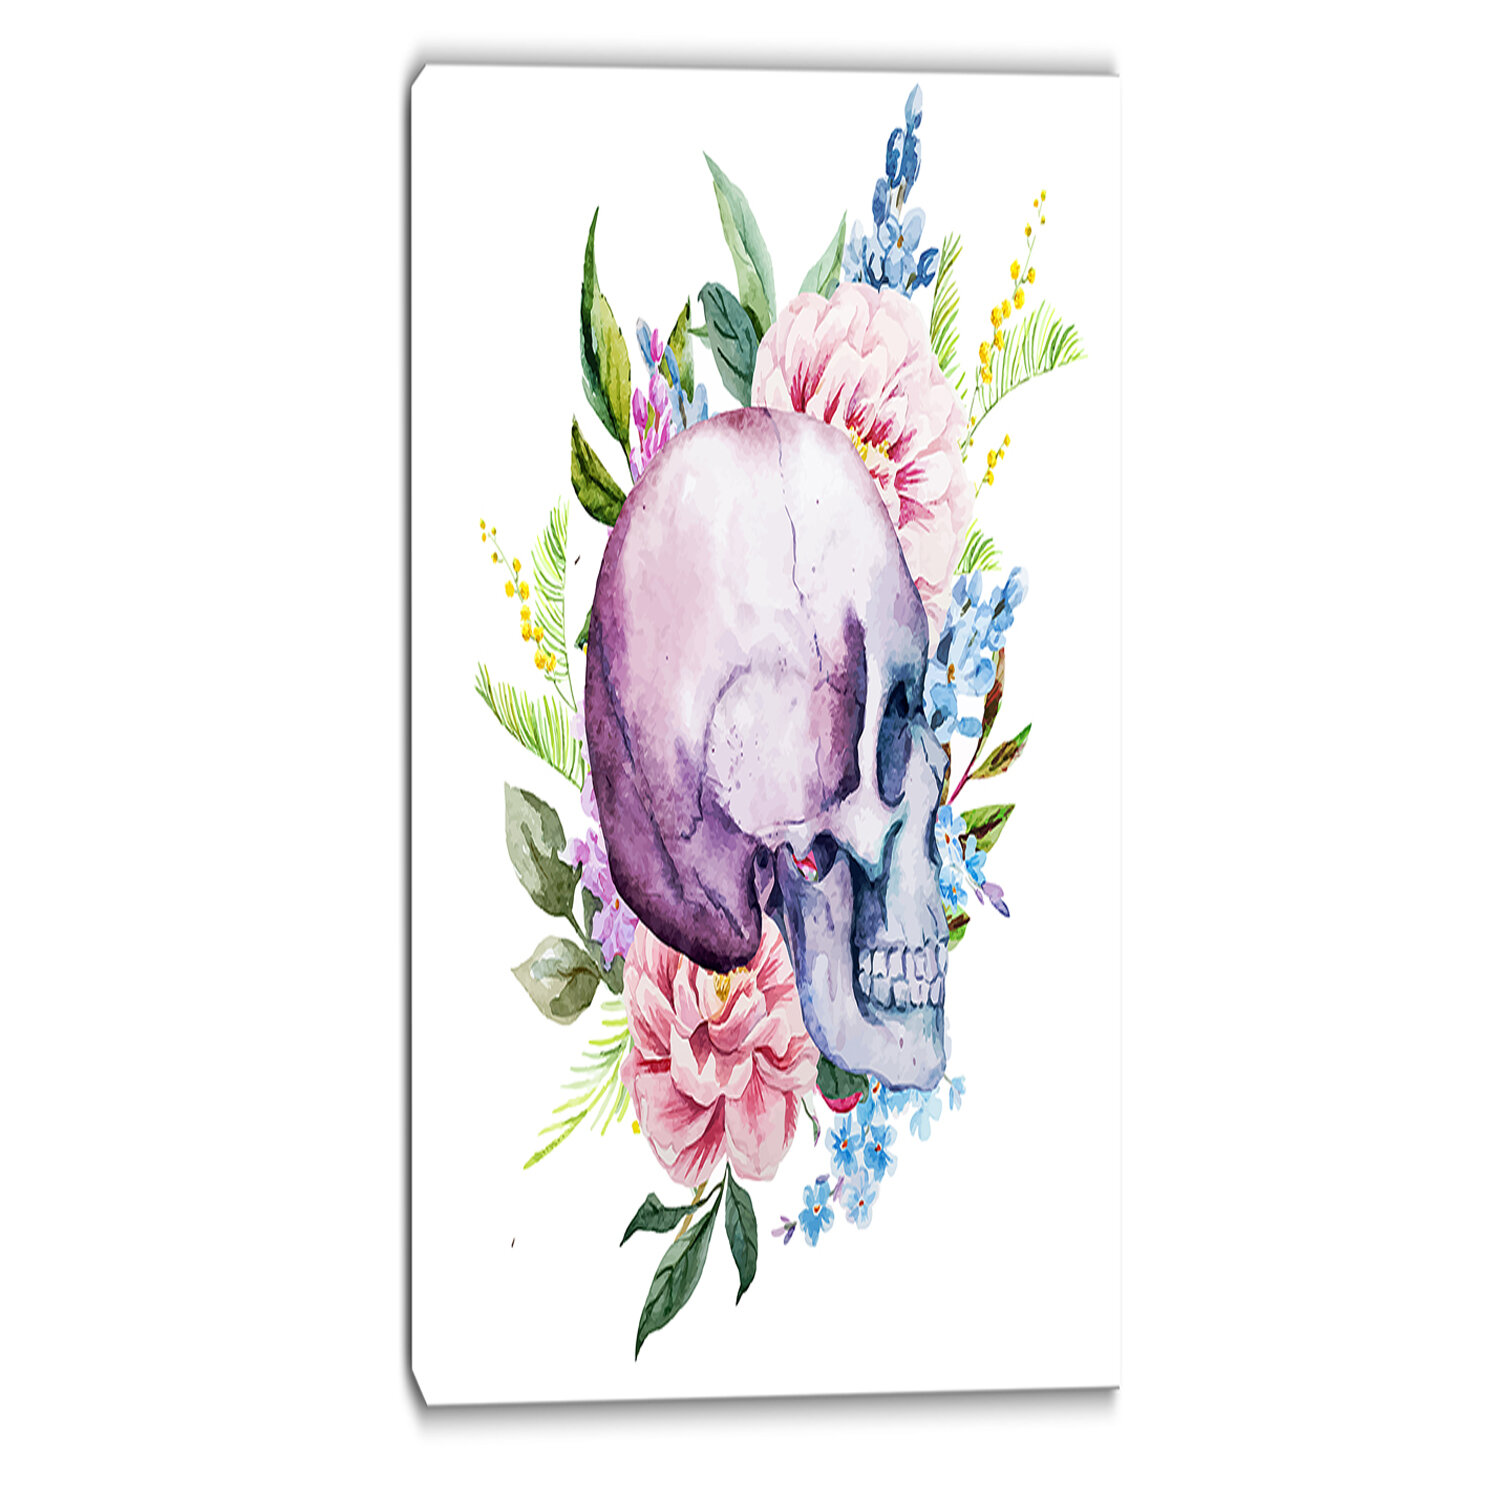 Designart Skull With Flower Borders Digital Floral Graphic Art On Wrapped Canvas Wayfair